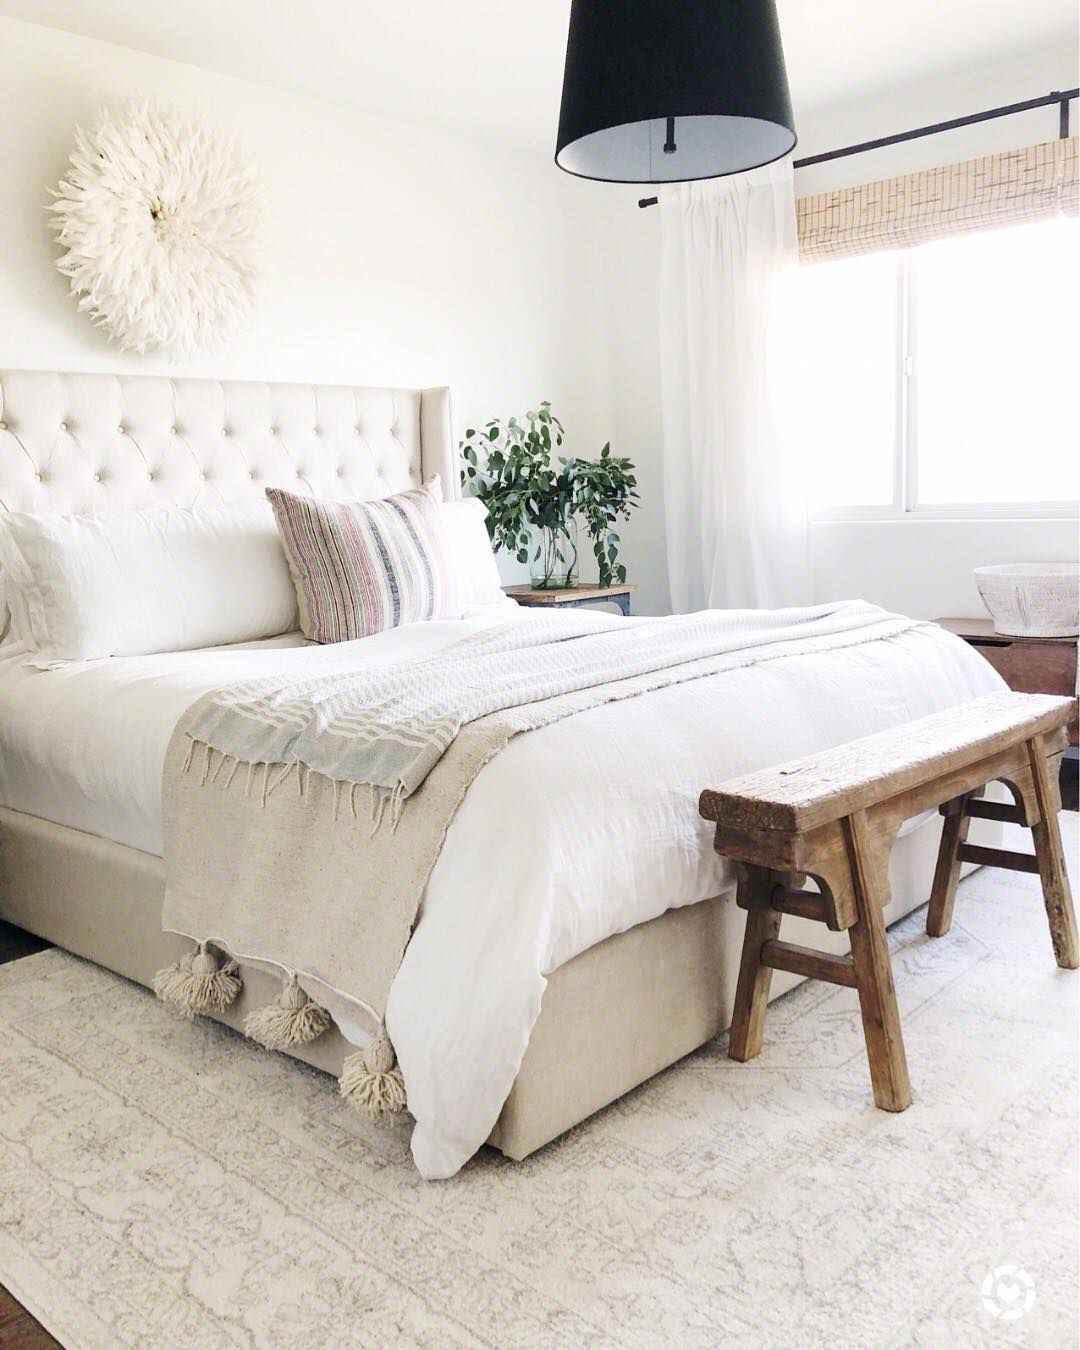 100 Ideas How To Transform Your Small Bedroom Into A Calming